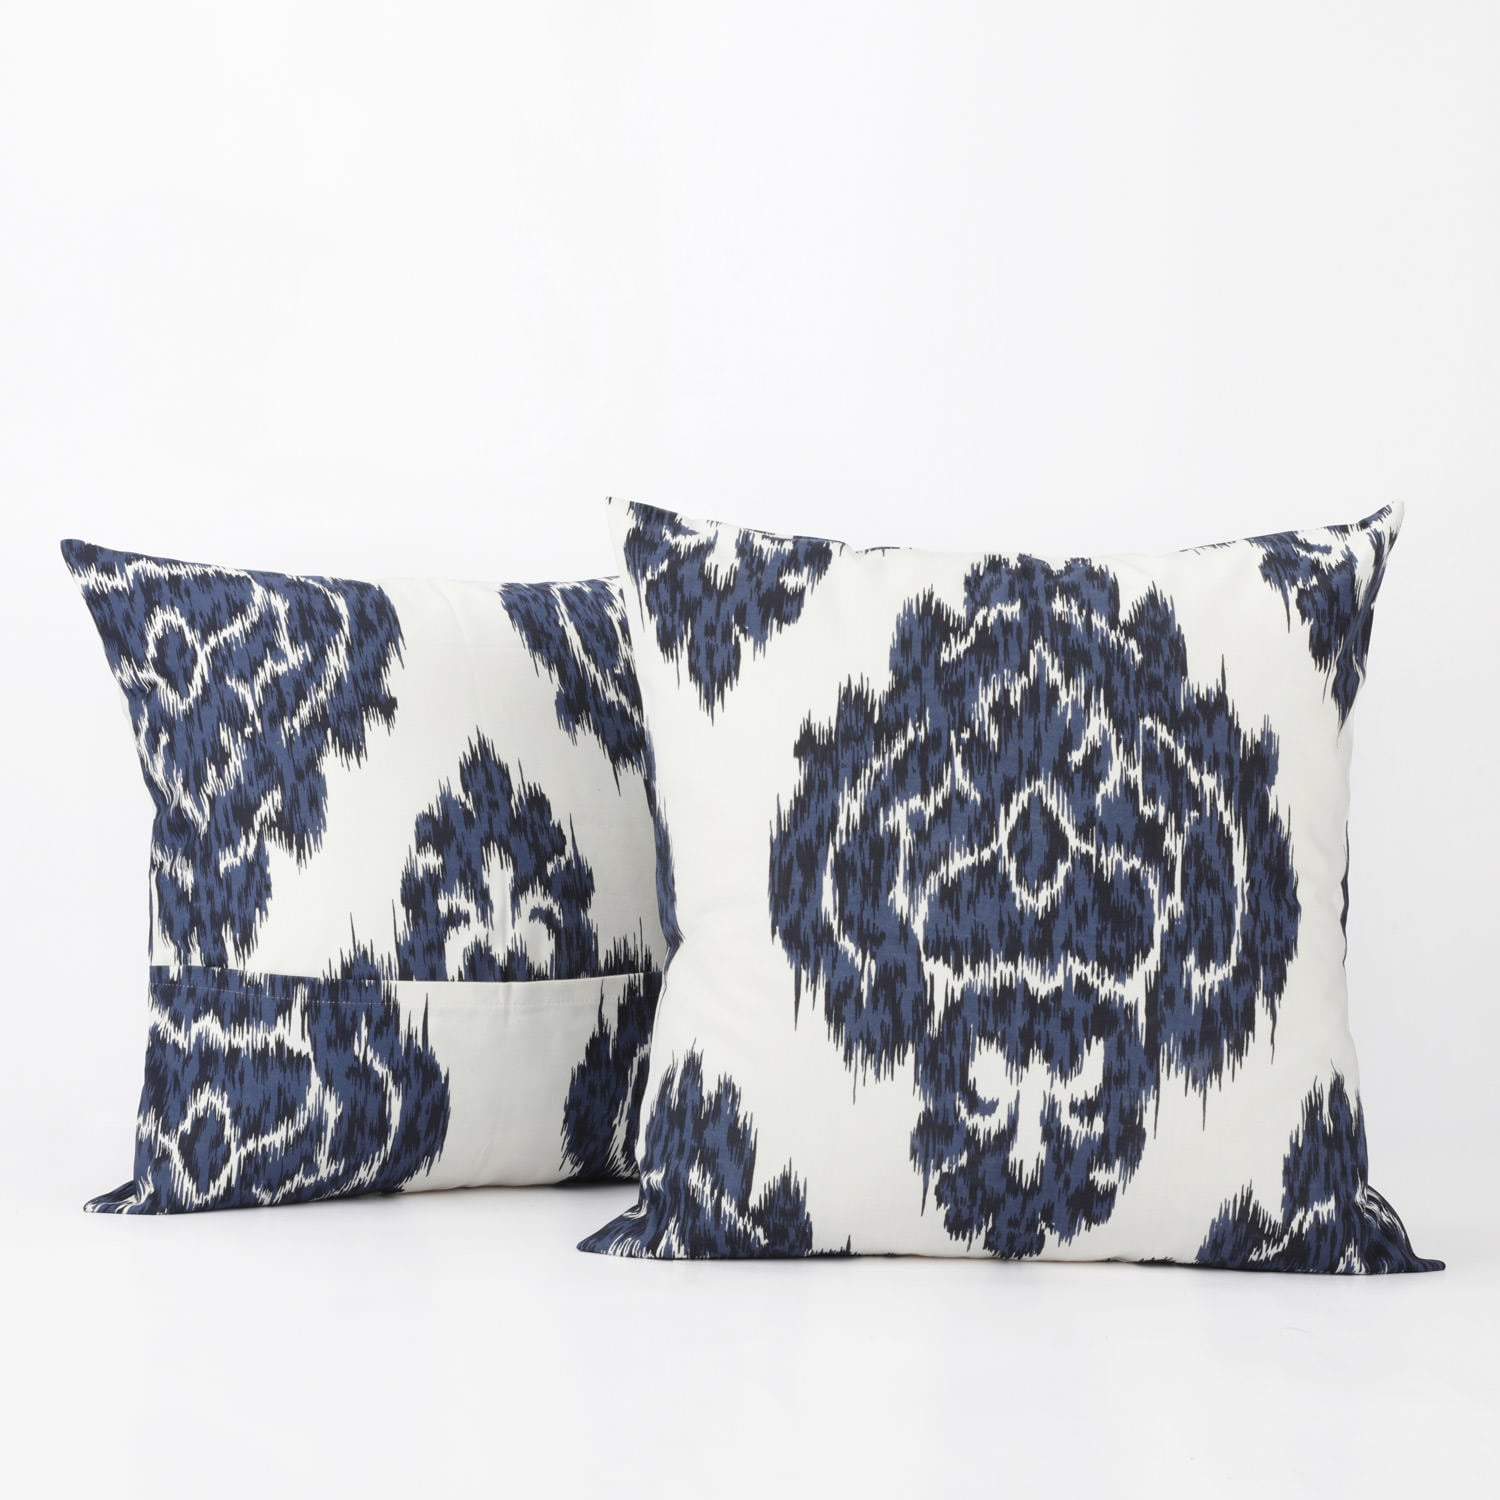 Ikat Blue Printed Cotton Cushion Cover (Pair)